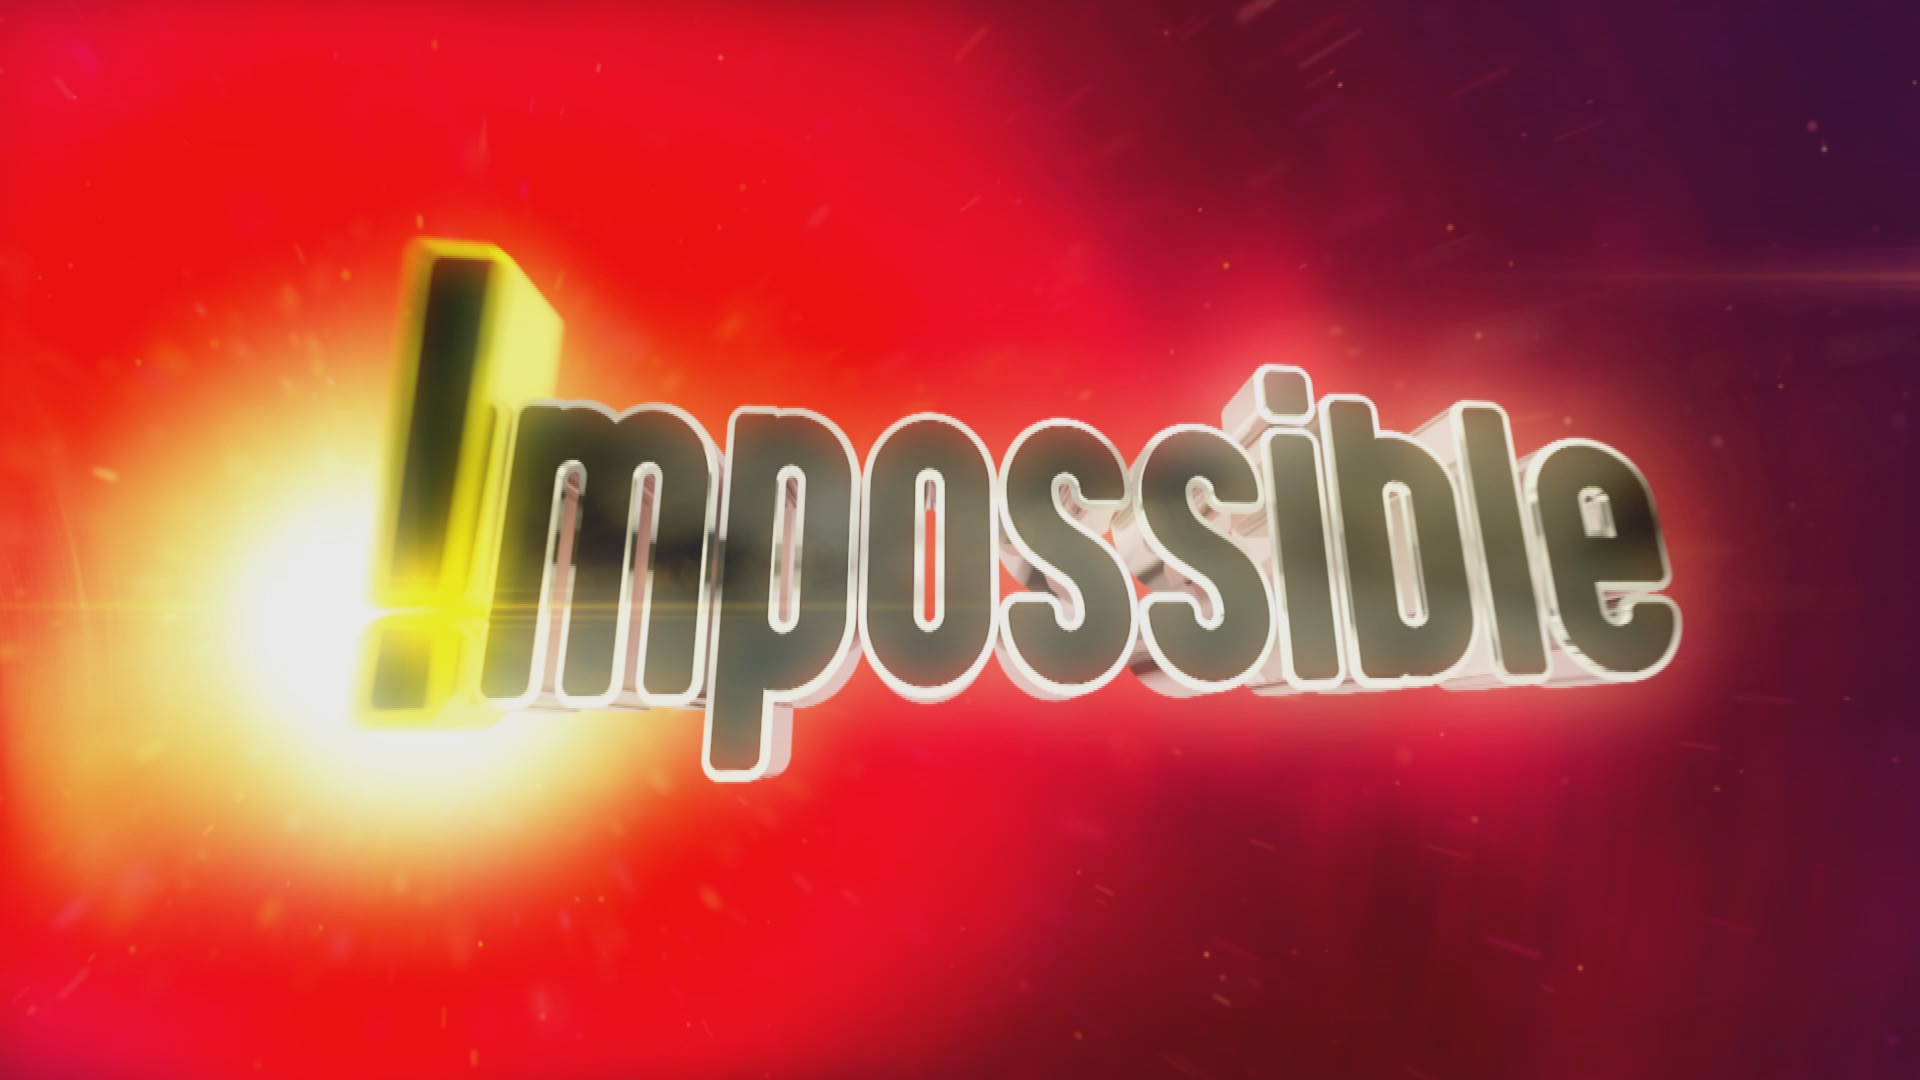 IMPOSSIBLE - UK TX TITLE.jpg